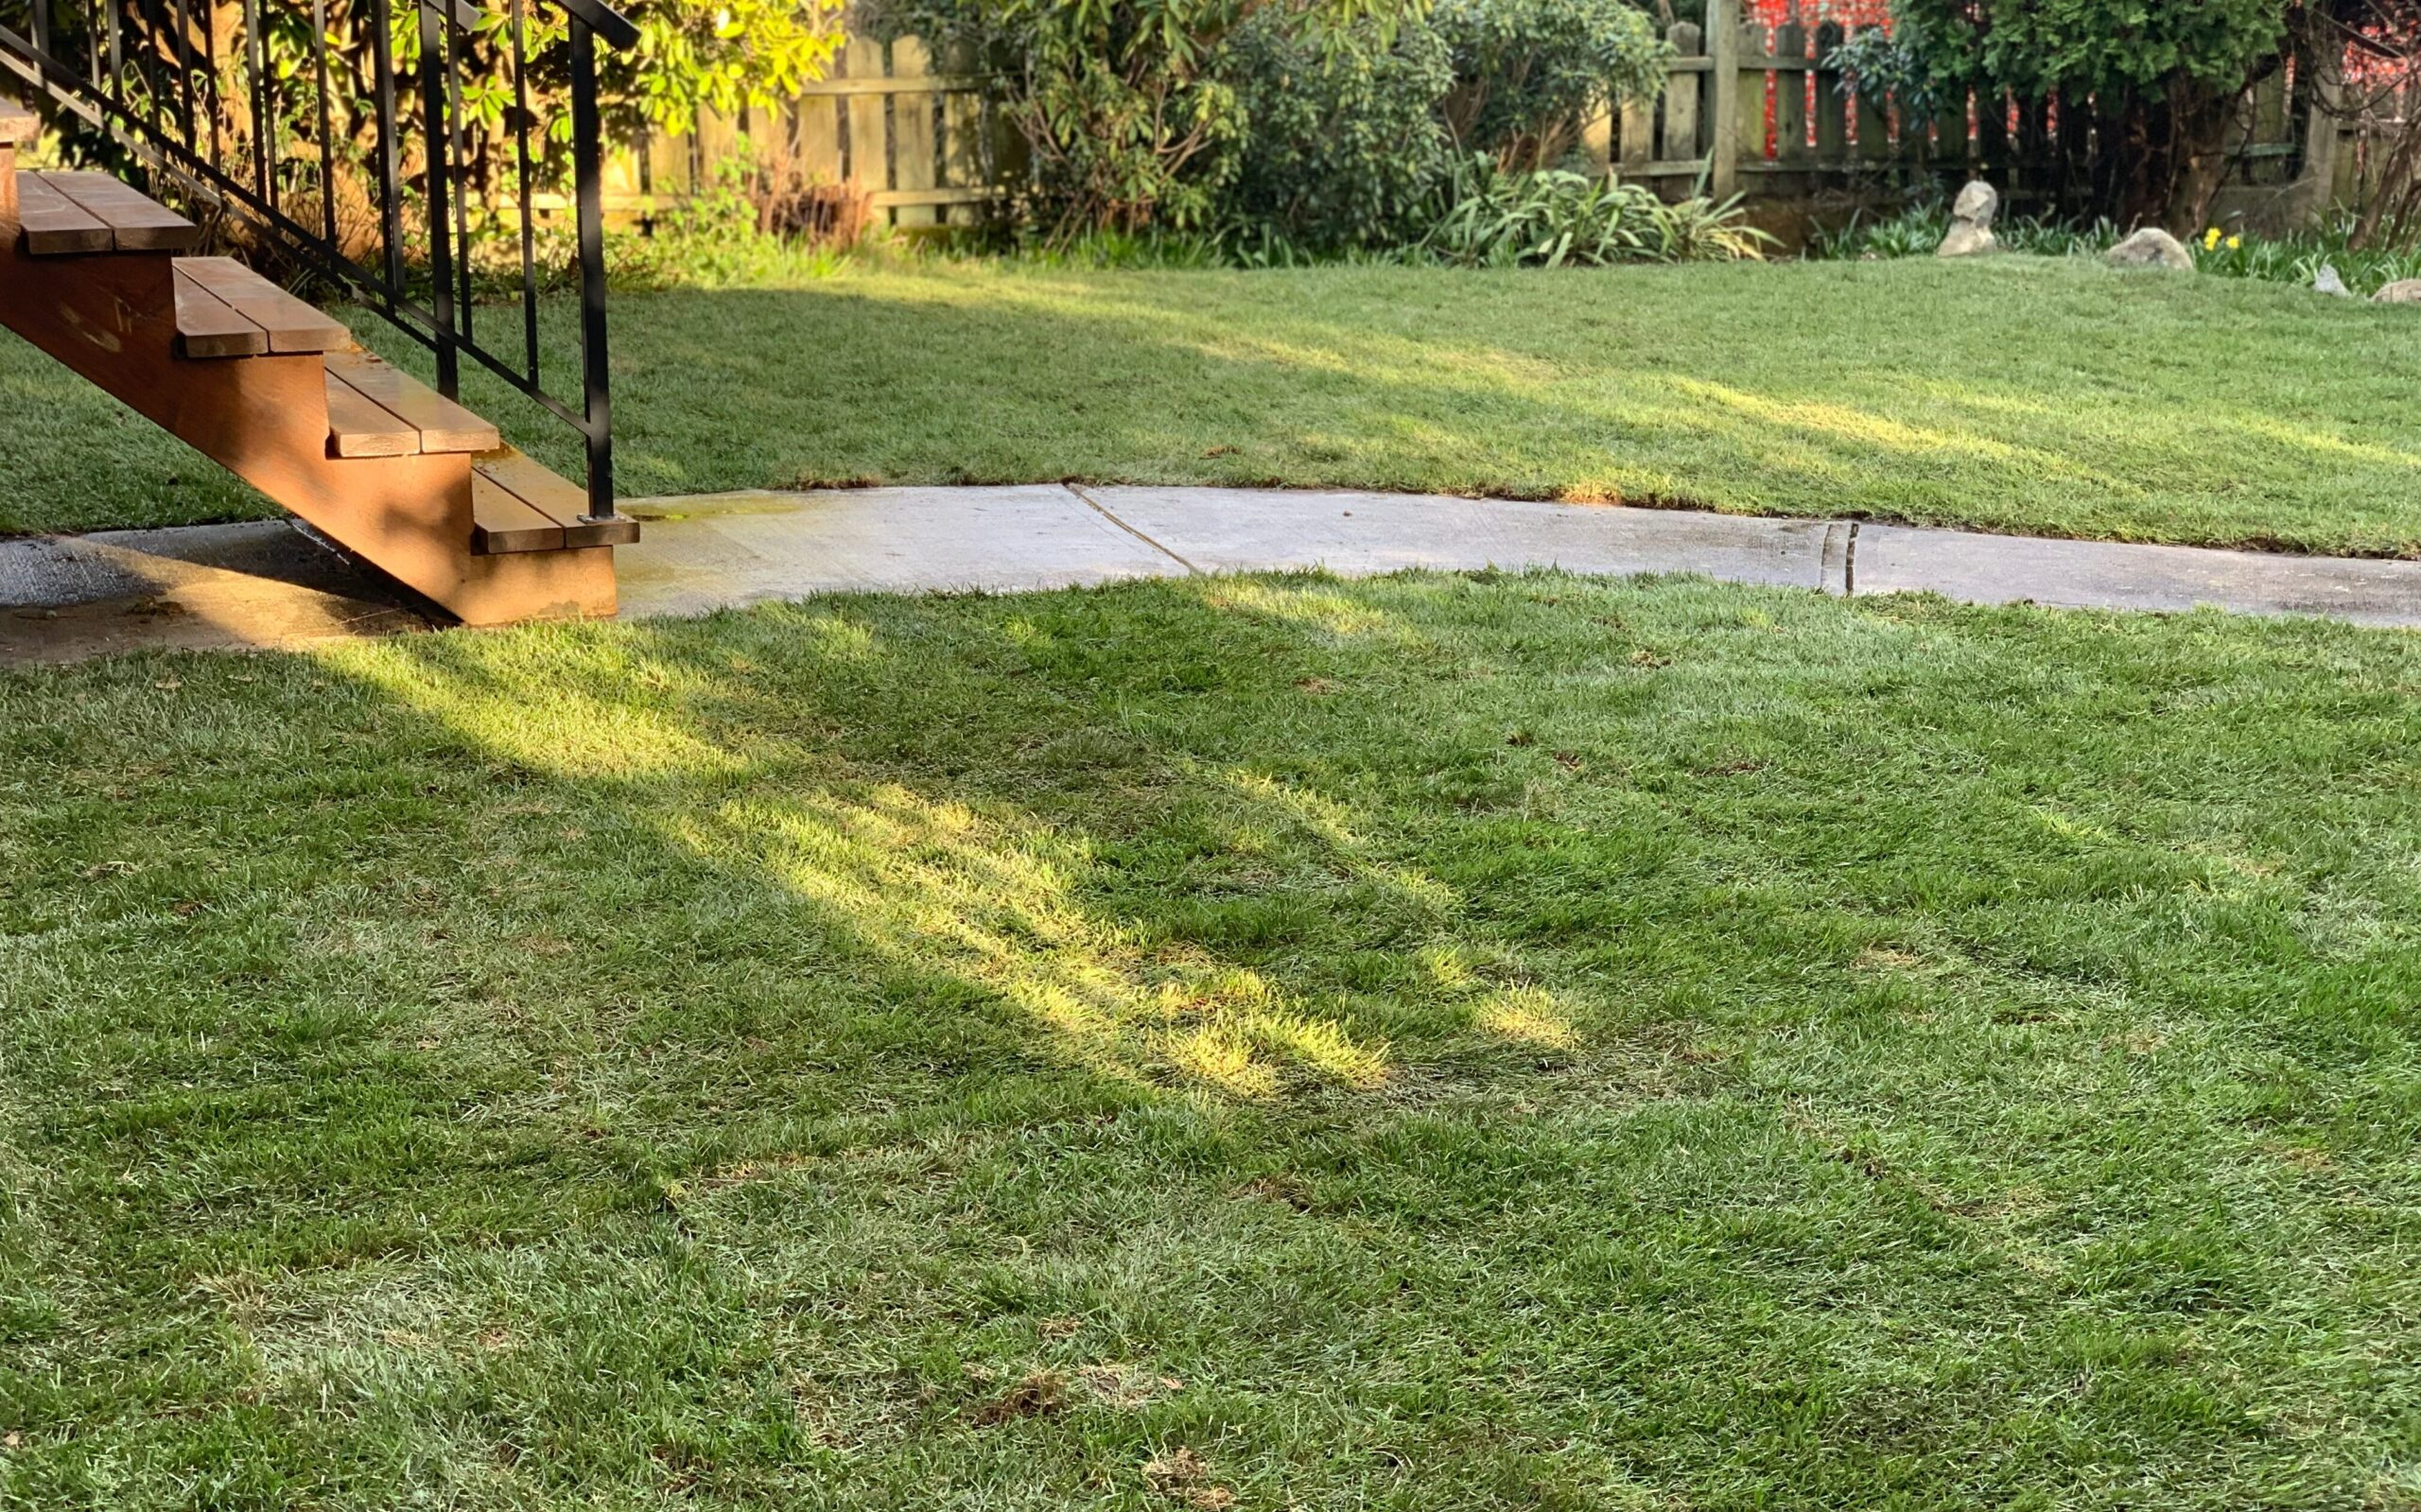 shaded lawn area